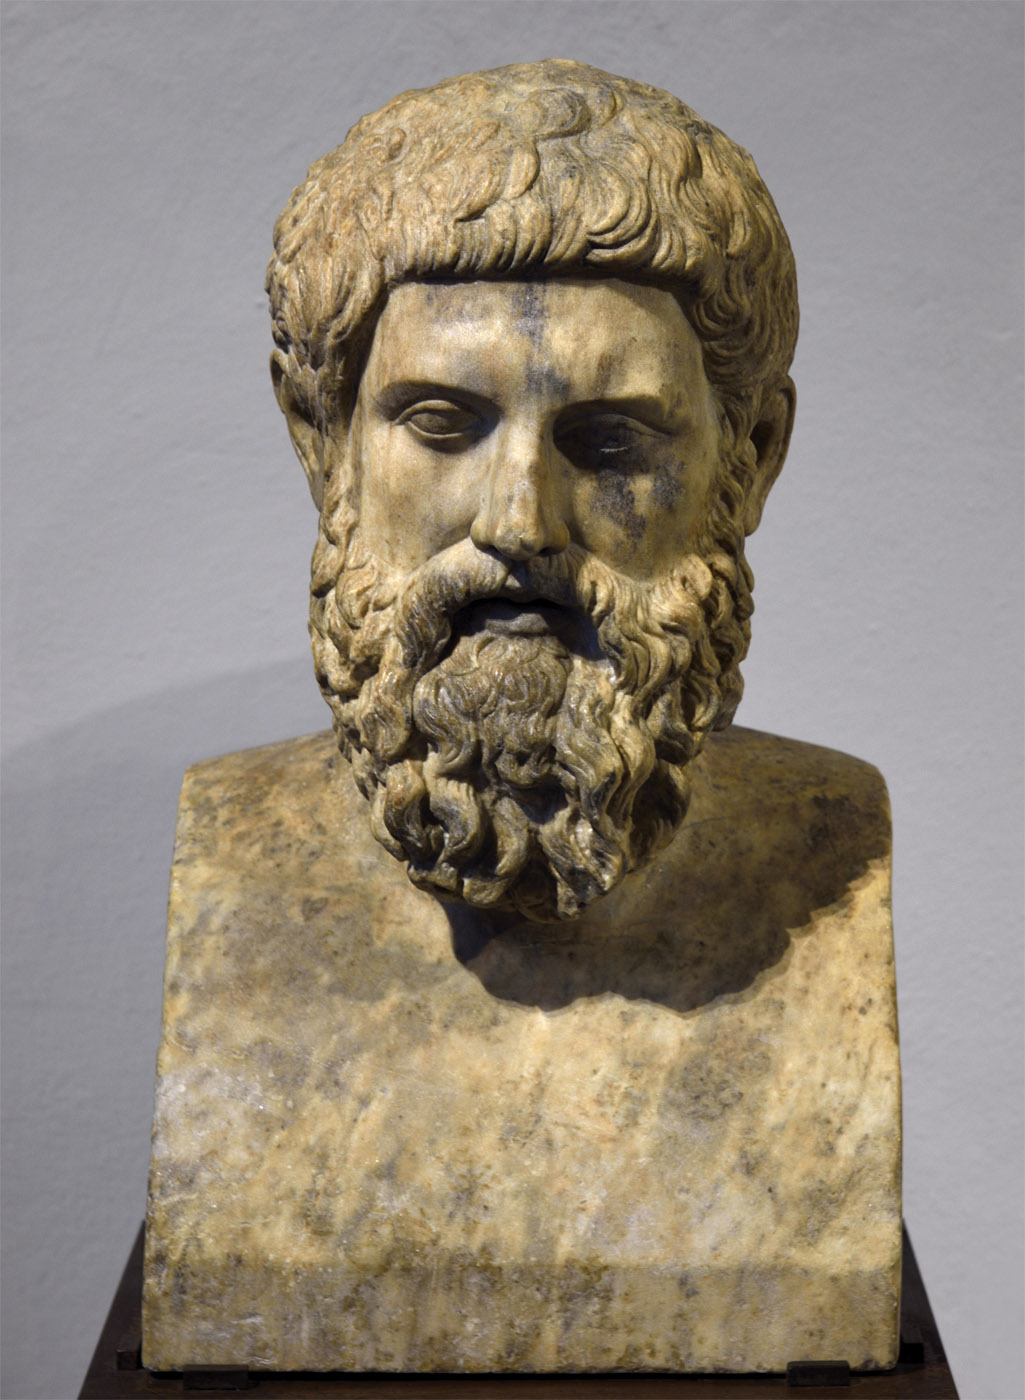 Herm of a barbed man (Miltiades?). Pentelic marble. 2nd half of the 2nd cent. CE. Inv. No. 346. Ravenna, National Museum